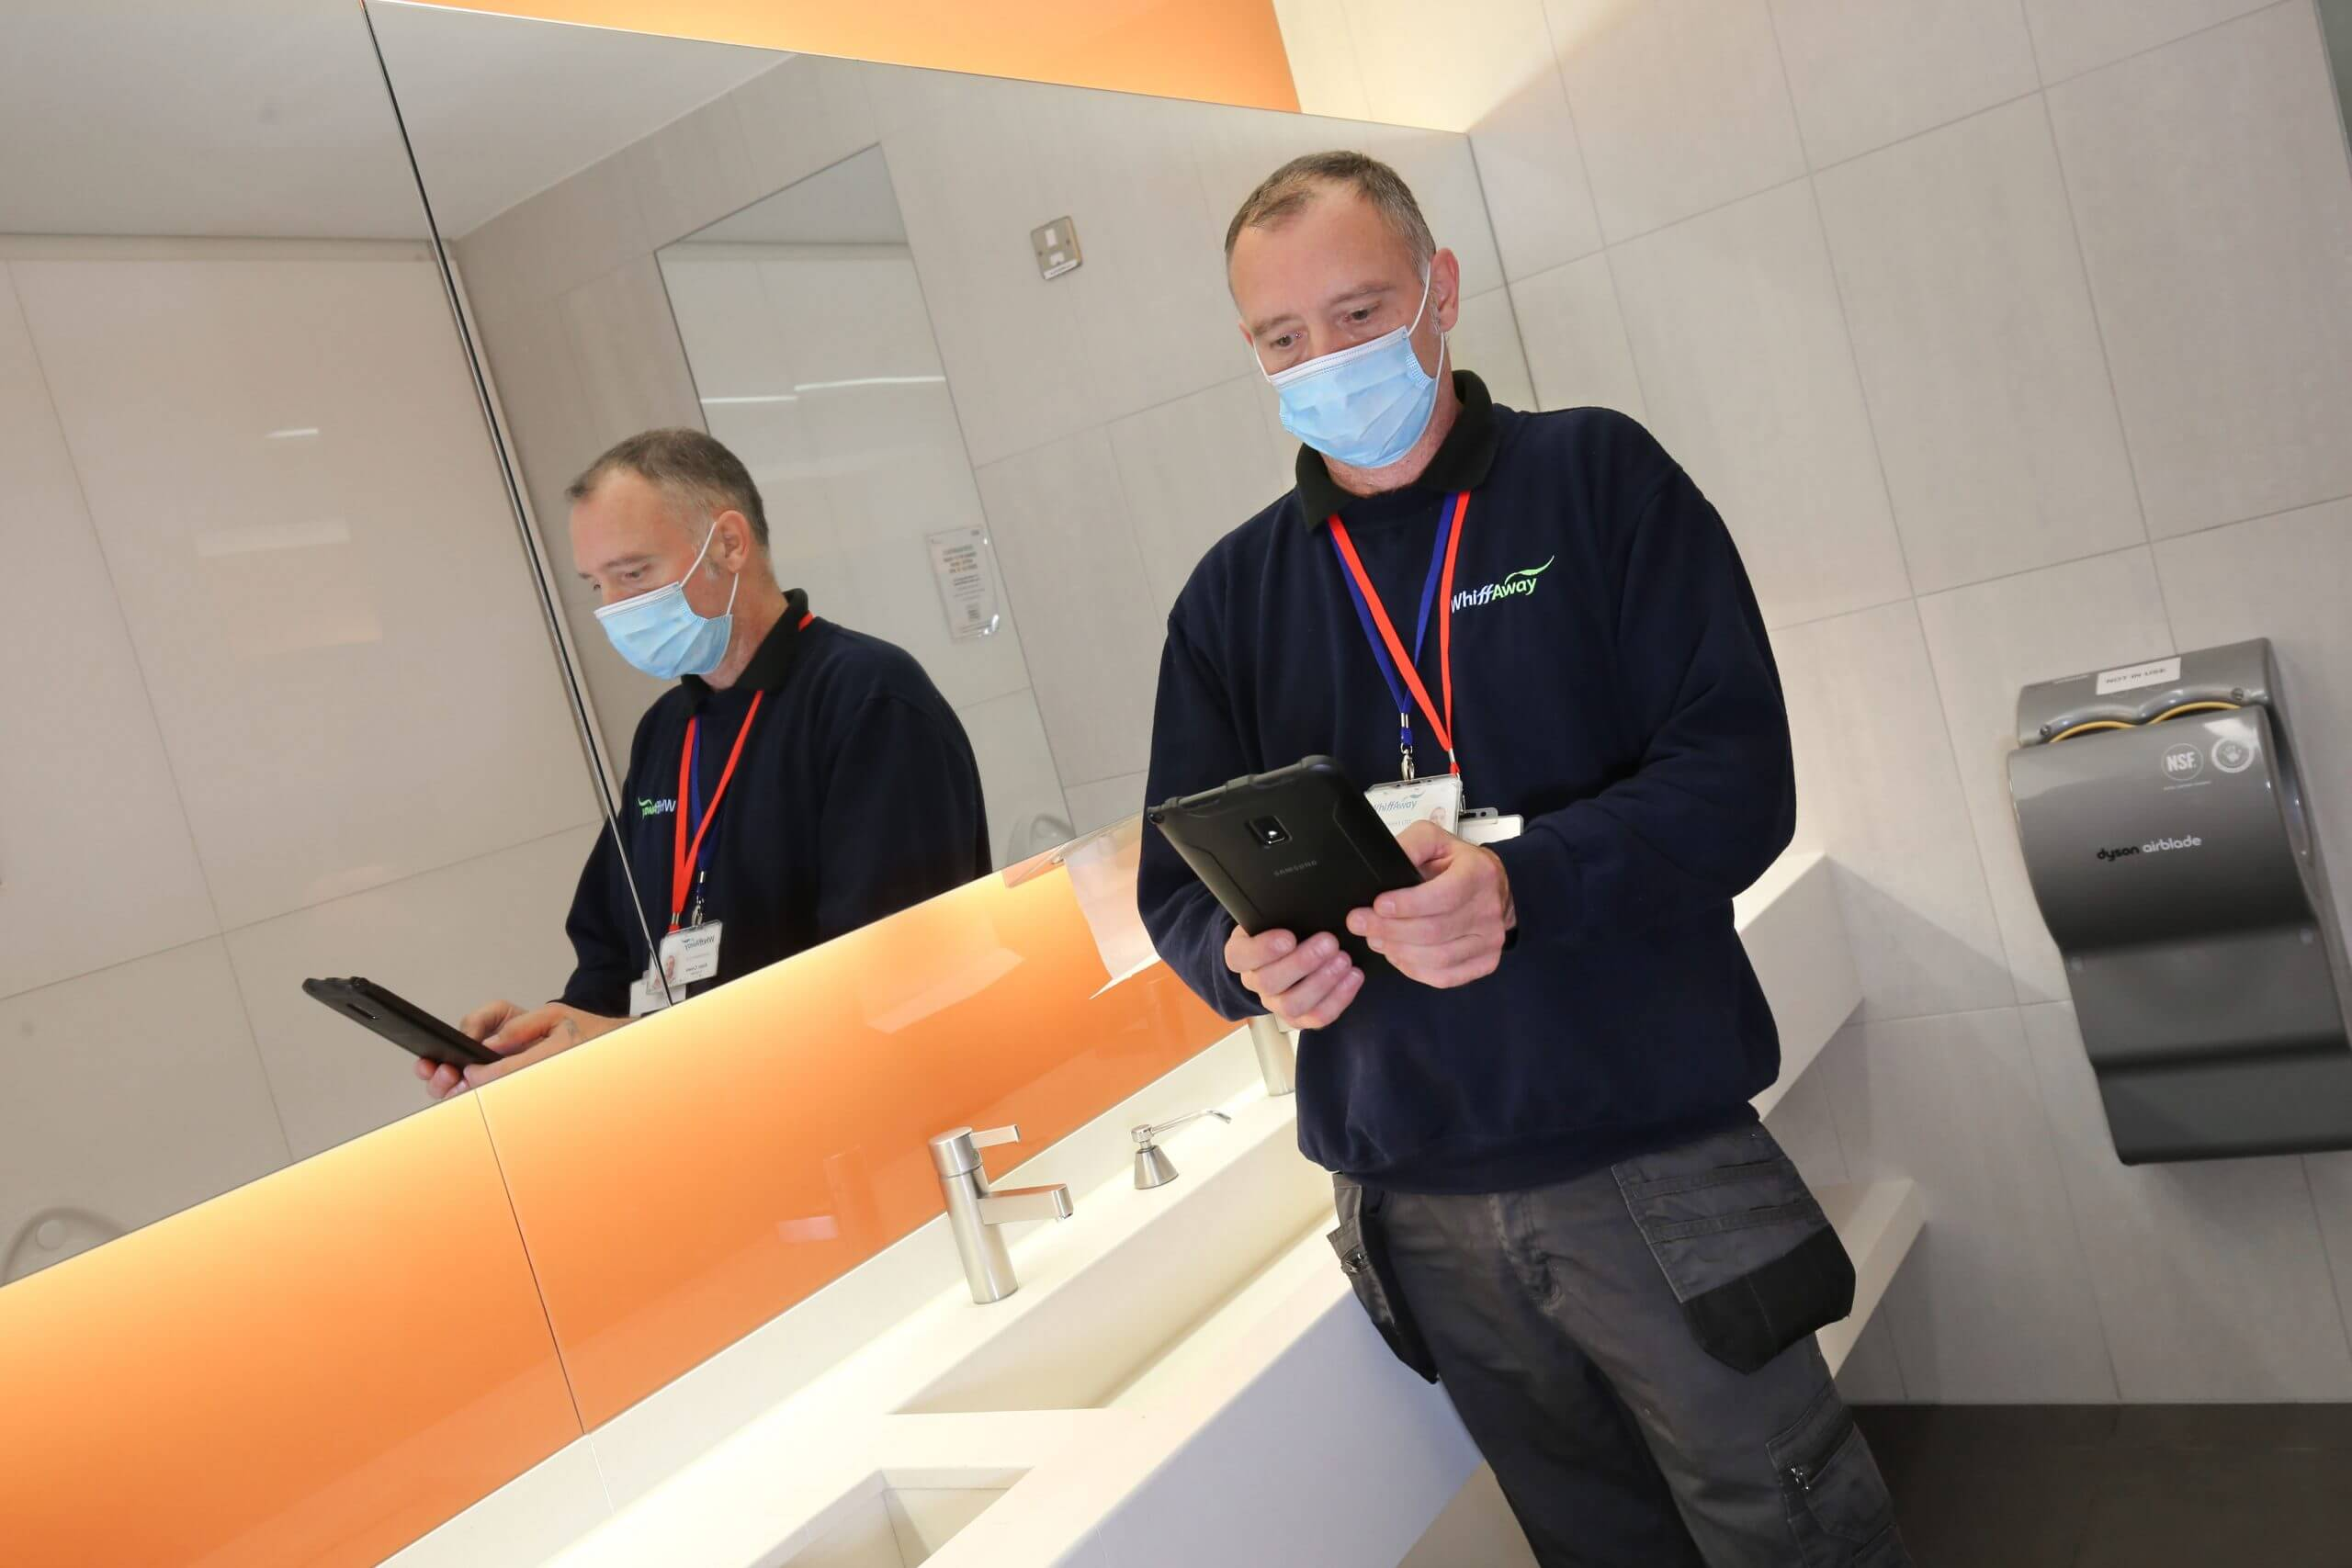 BigChange Mobile Workforce Technology Helps WhiffAway Clean Up After Lockdown